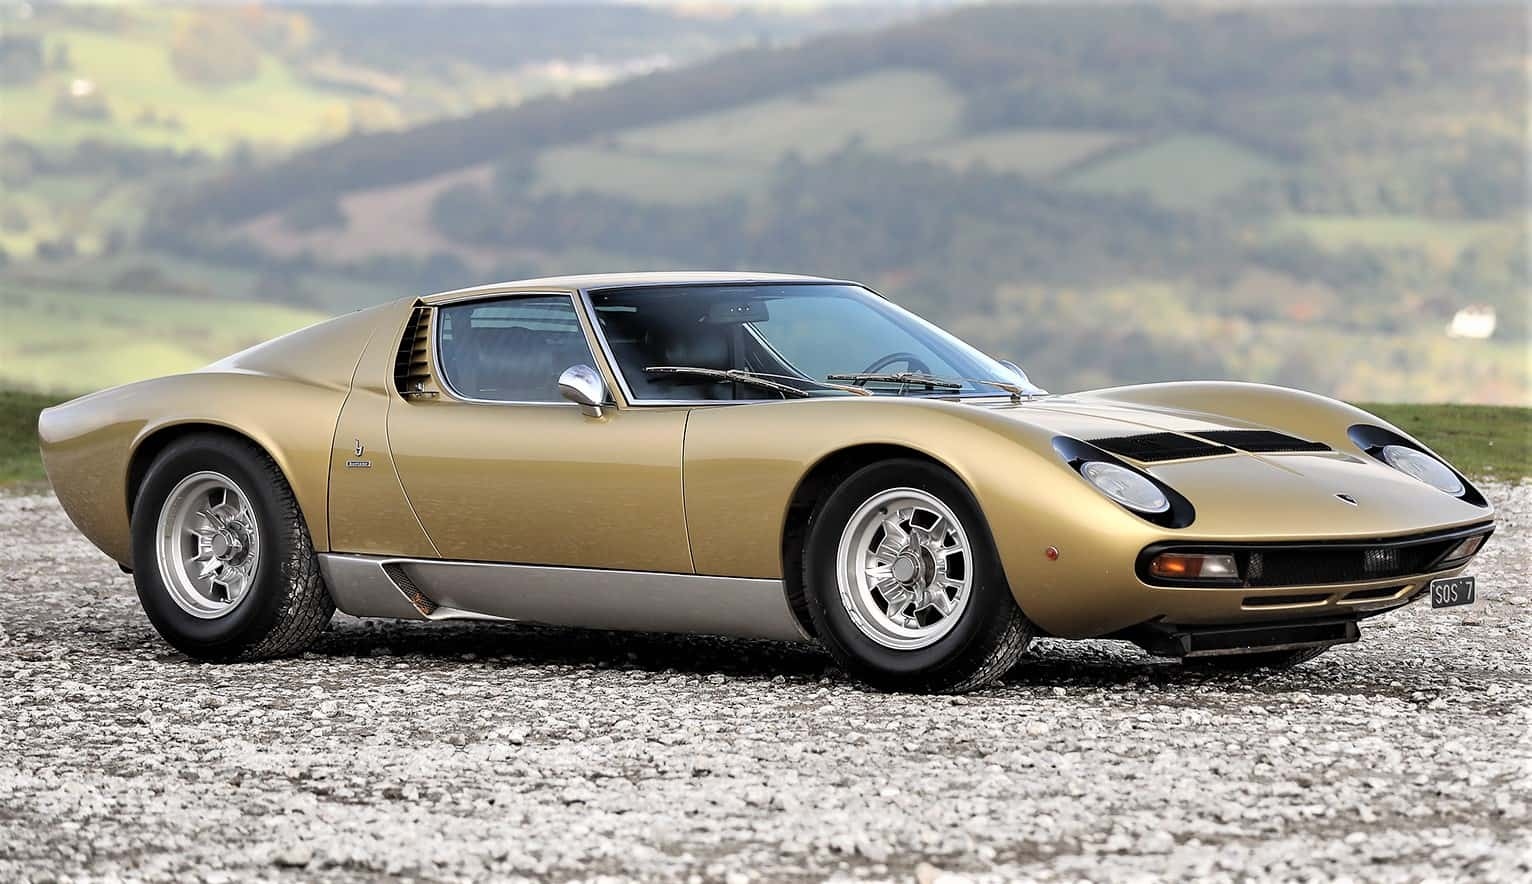 gooding, Gooding's first auction outside US offers 16 'masterpiece collection' cars, ClassicCars.com Journal